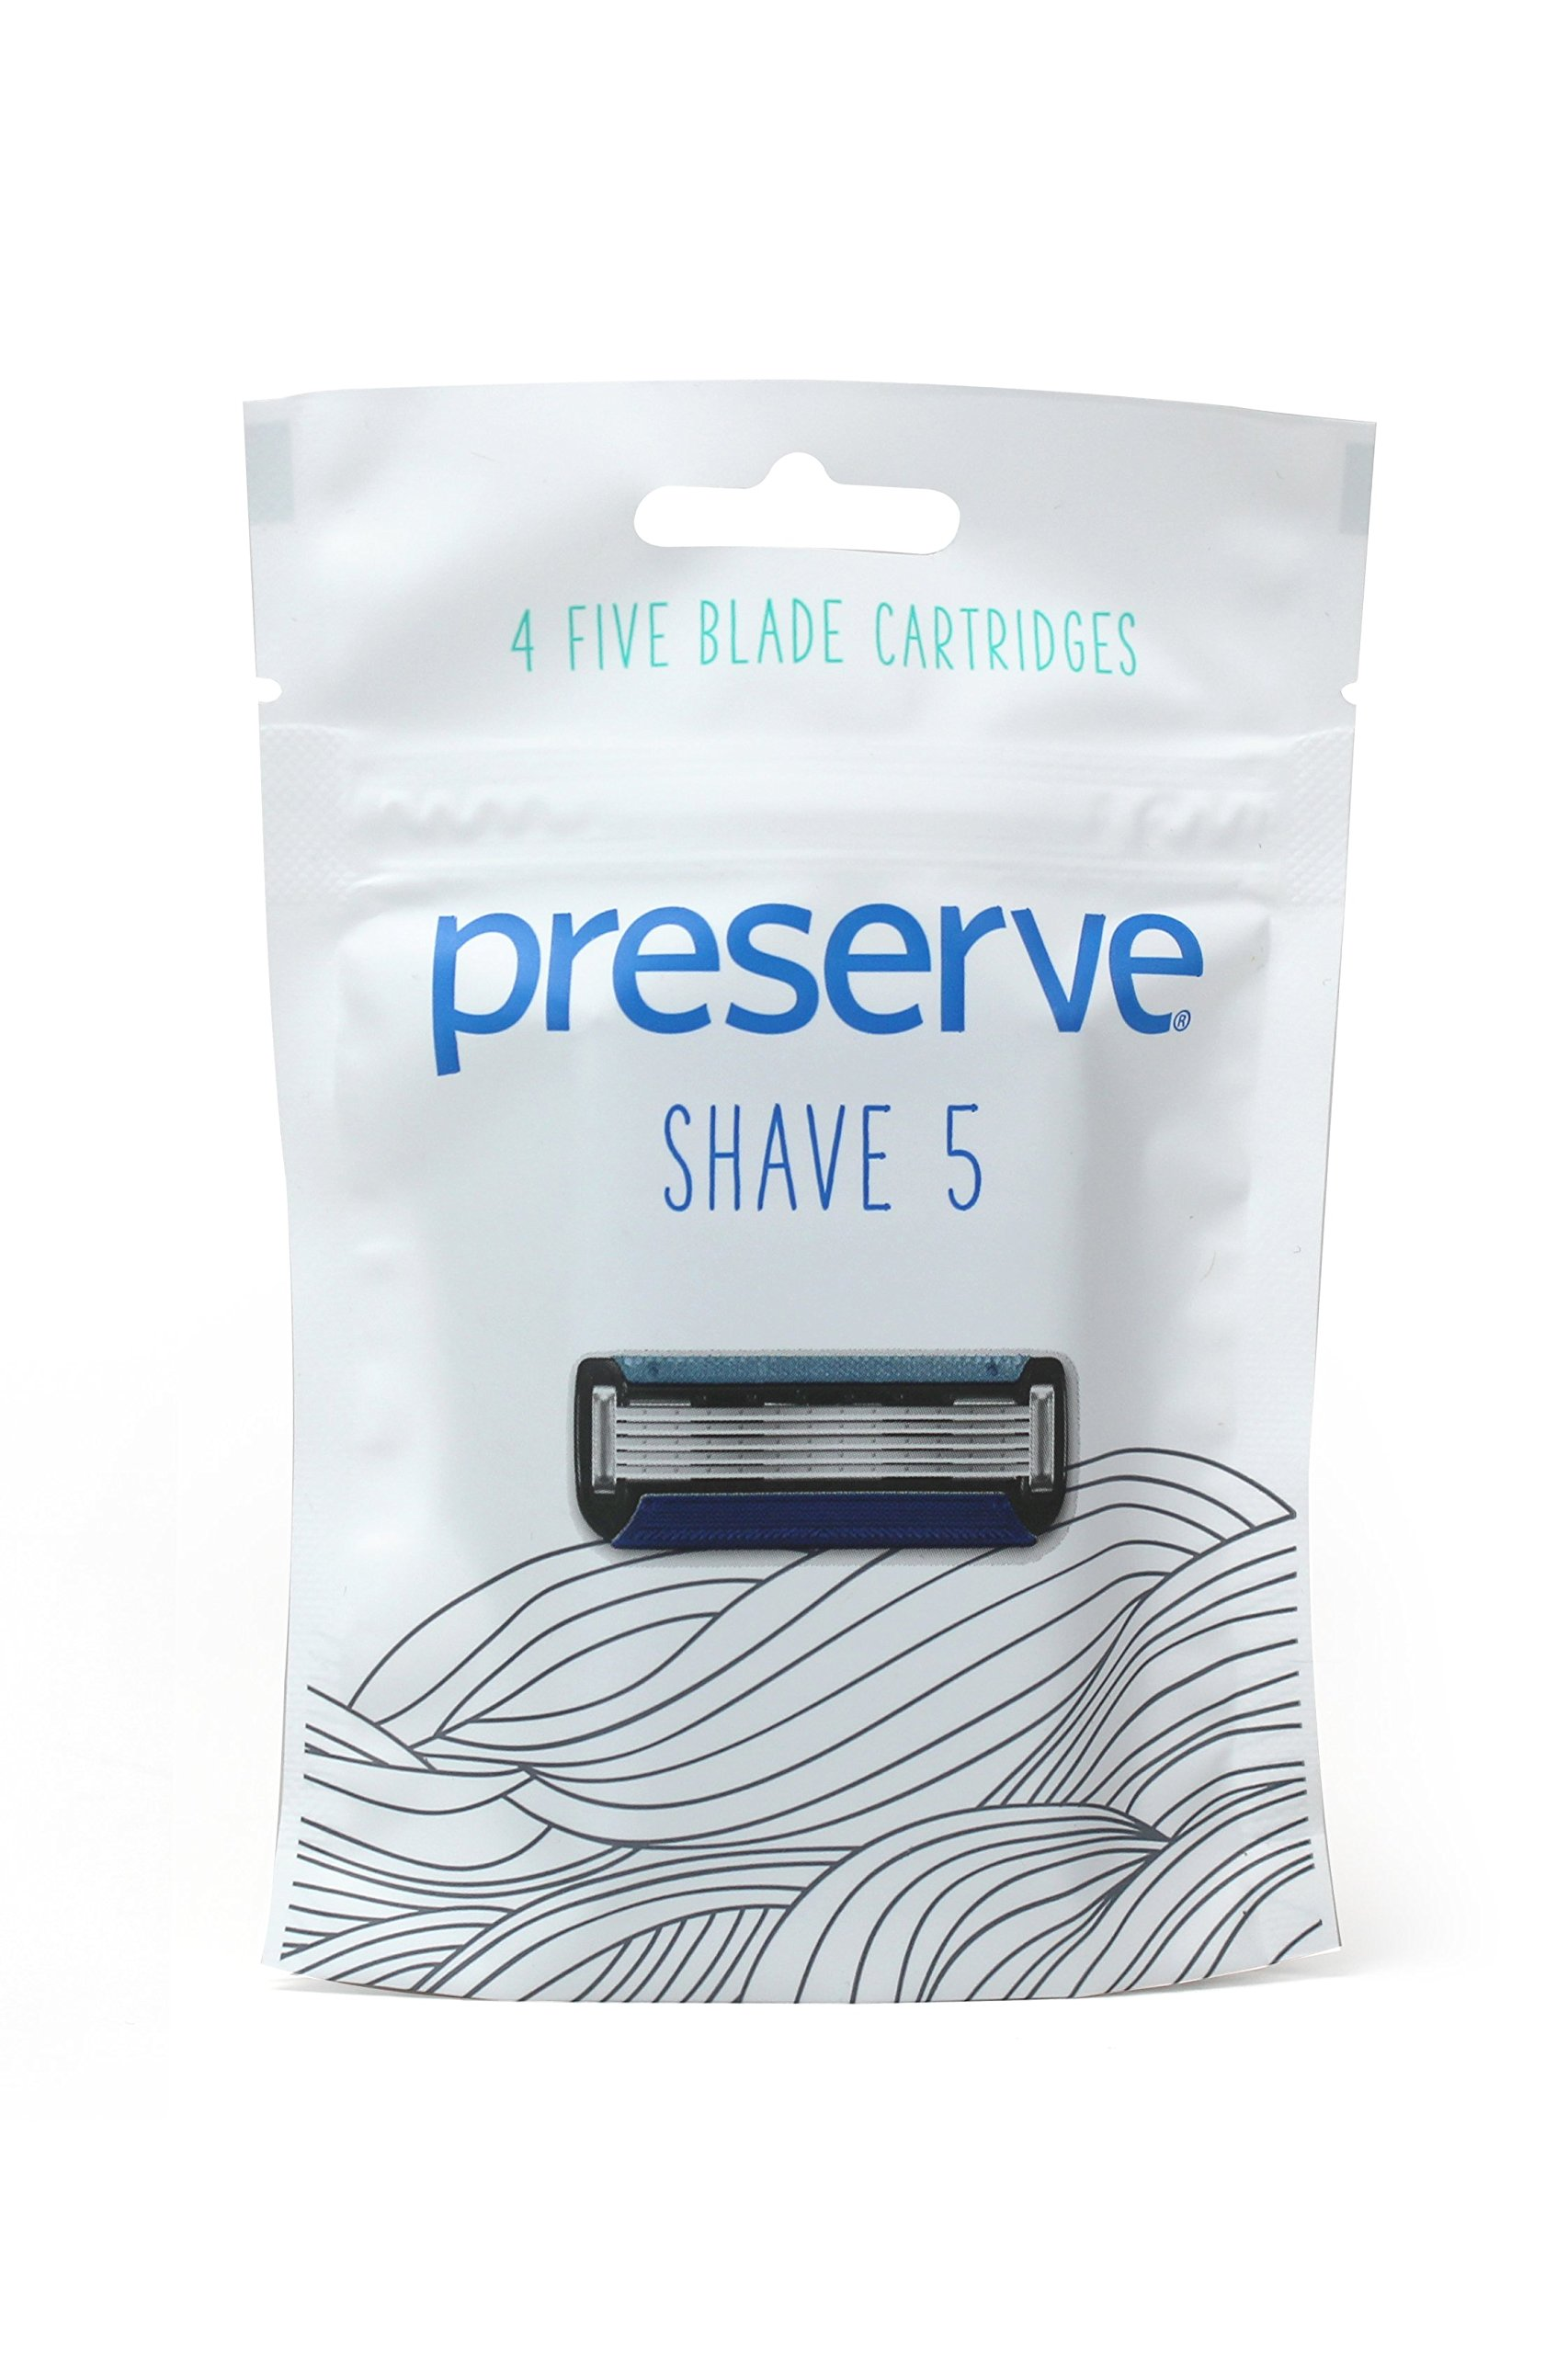 Preserve Five Blade Replacement Cartridges for Preserve Shave Five Recycled Razor, 4 Count